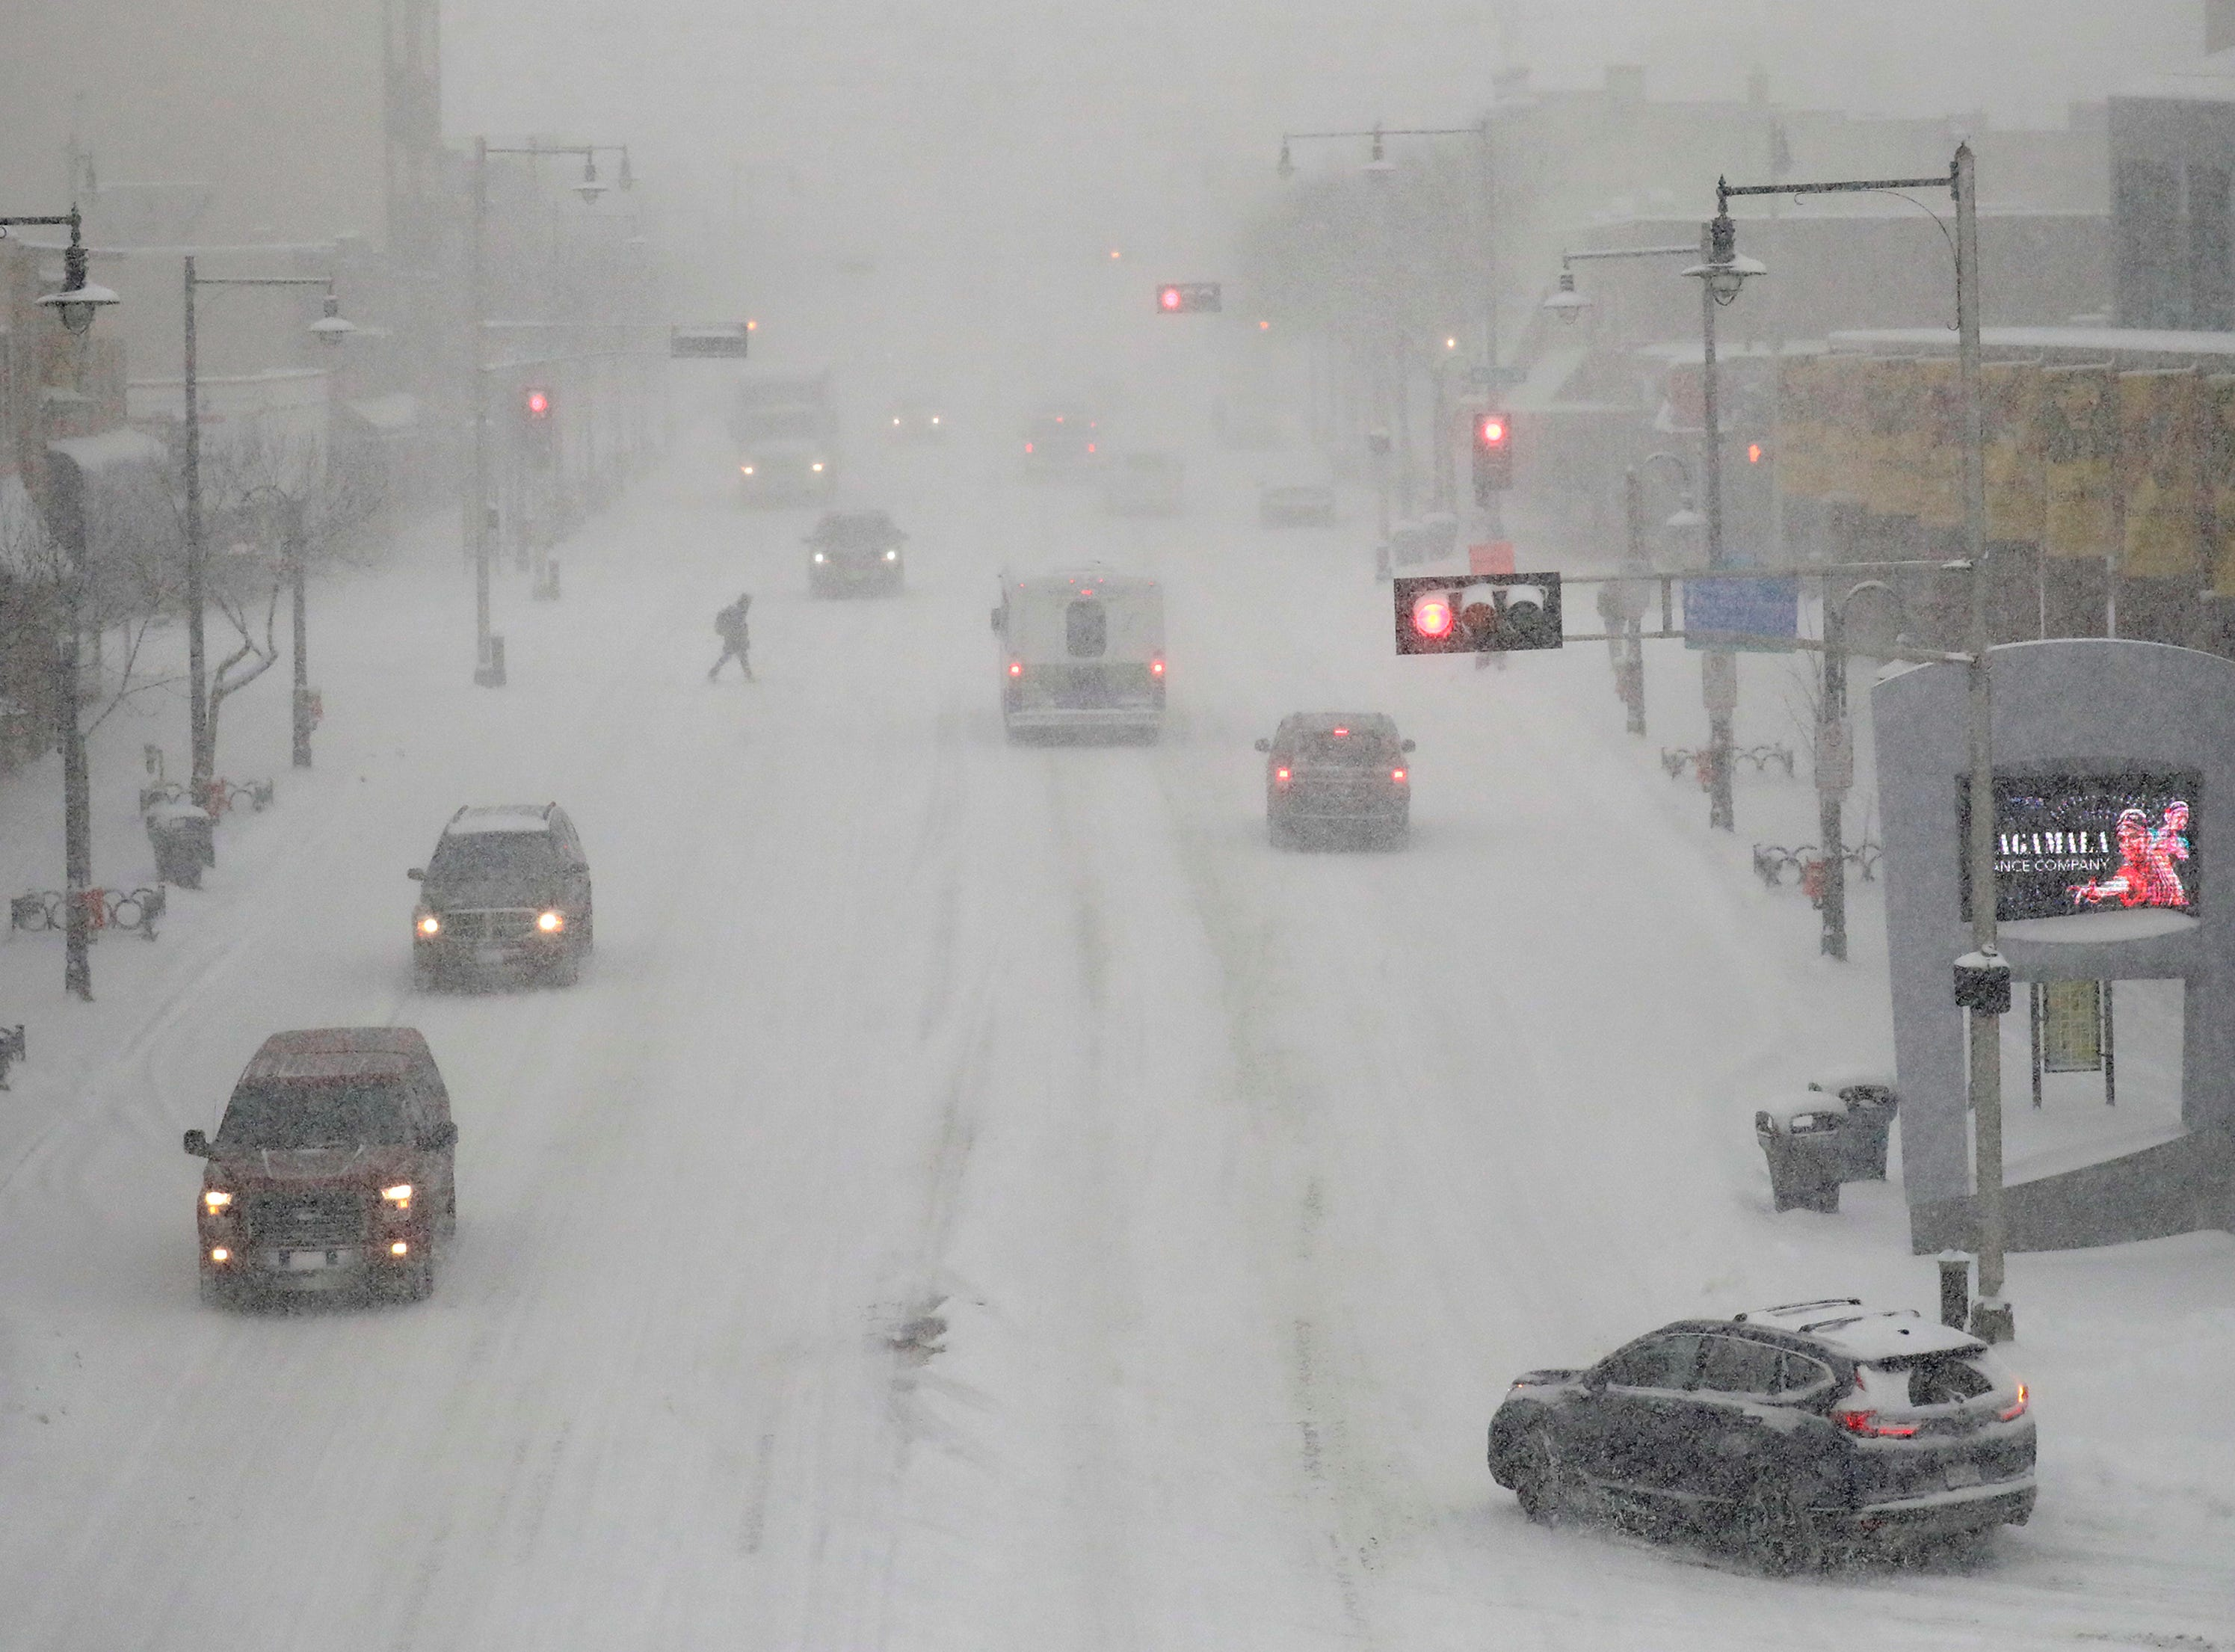 A lone pedestrian crosses College Avenue as traffic moves slowly along College Avenue during a snowstorm Wednesday, Jan. 23, 2019, in Appleton, Wis.